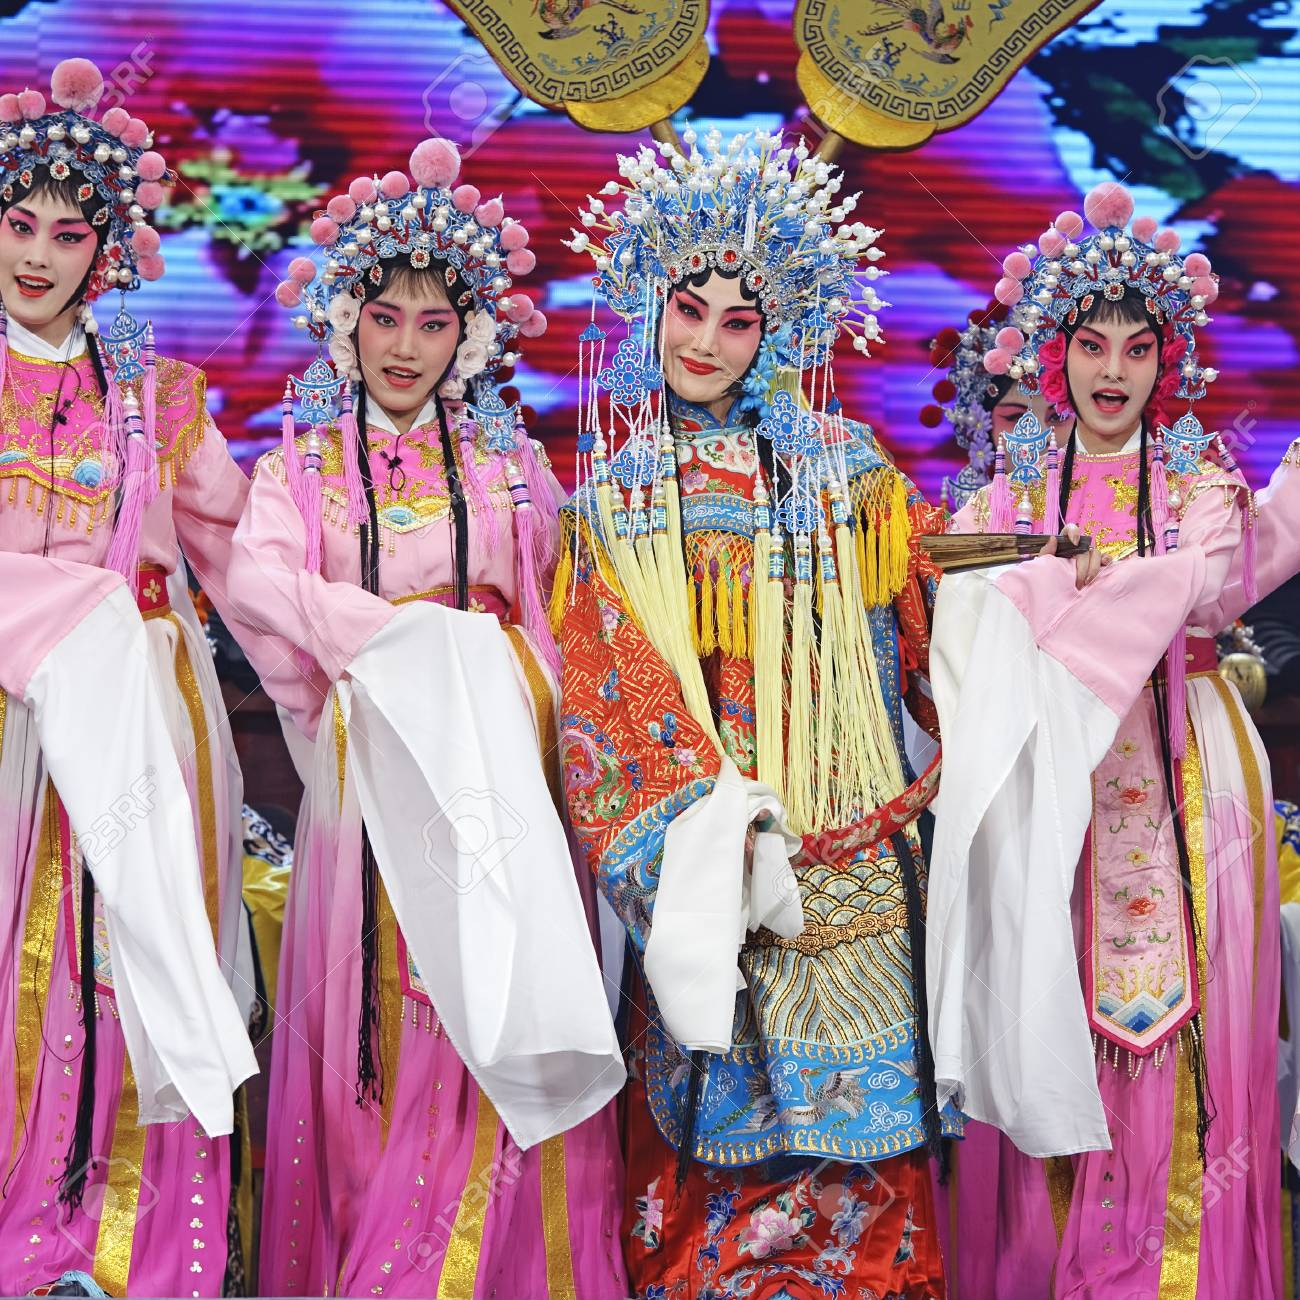 CHENGDU - JUN 4: chinese Hui opera performer make a show on stage to compete for awards in 25th Chinese Drama Plum Blossom Award competition at Xinan theater.Jun 4, 2011 in Chengdu, China.Chinese Drama Plum Blossom Award is the highest theatrical award i Stock Photo - 12143234